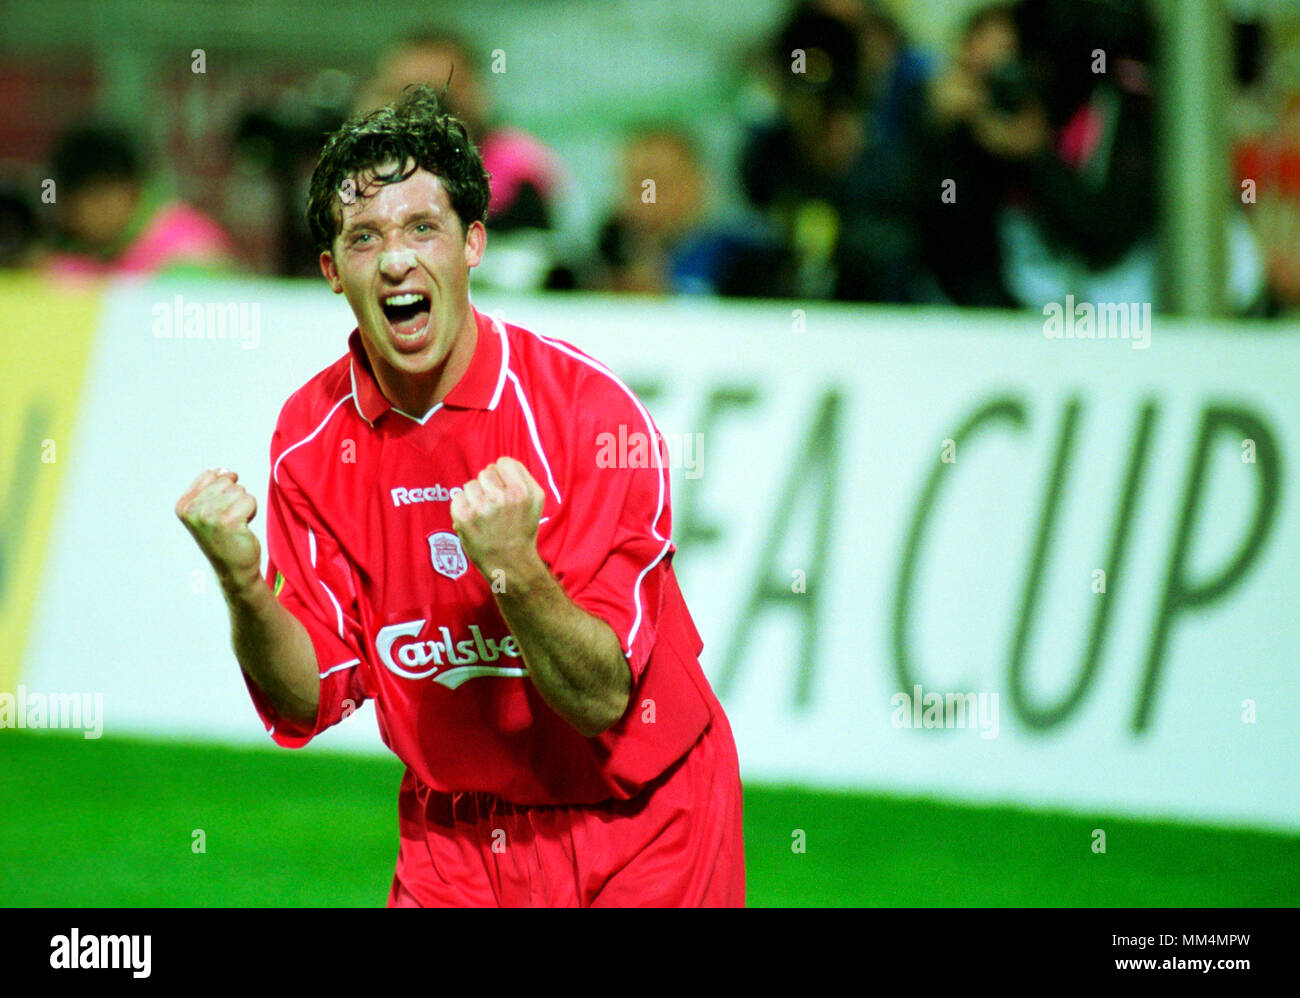 Football: Westfalenstadion Dortmund Germany 16.5.2001, UEFA Cup Season 2000/2001 Final Liverpool FC vs Deportivo Alaves 5:4 after golden goal extra time ---  Robbie FOWLER (Liverpool) celebrates hs goal for the 4:3 Stock Photo